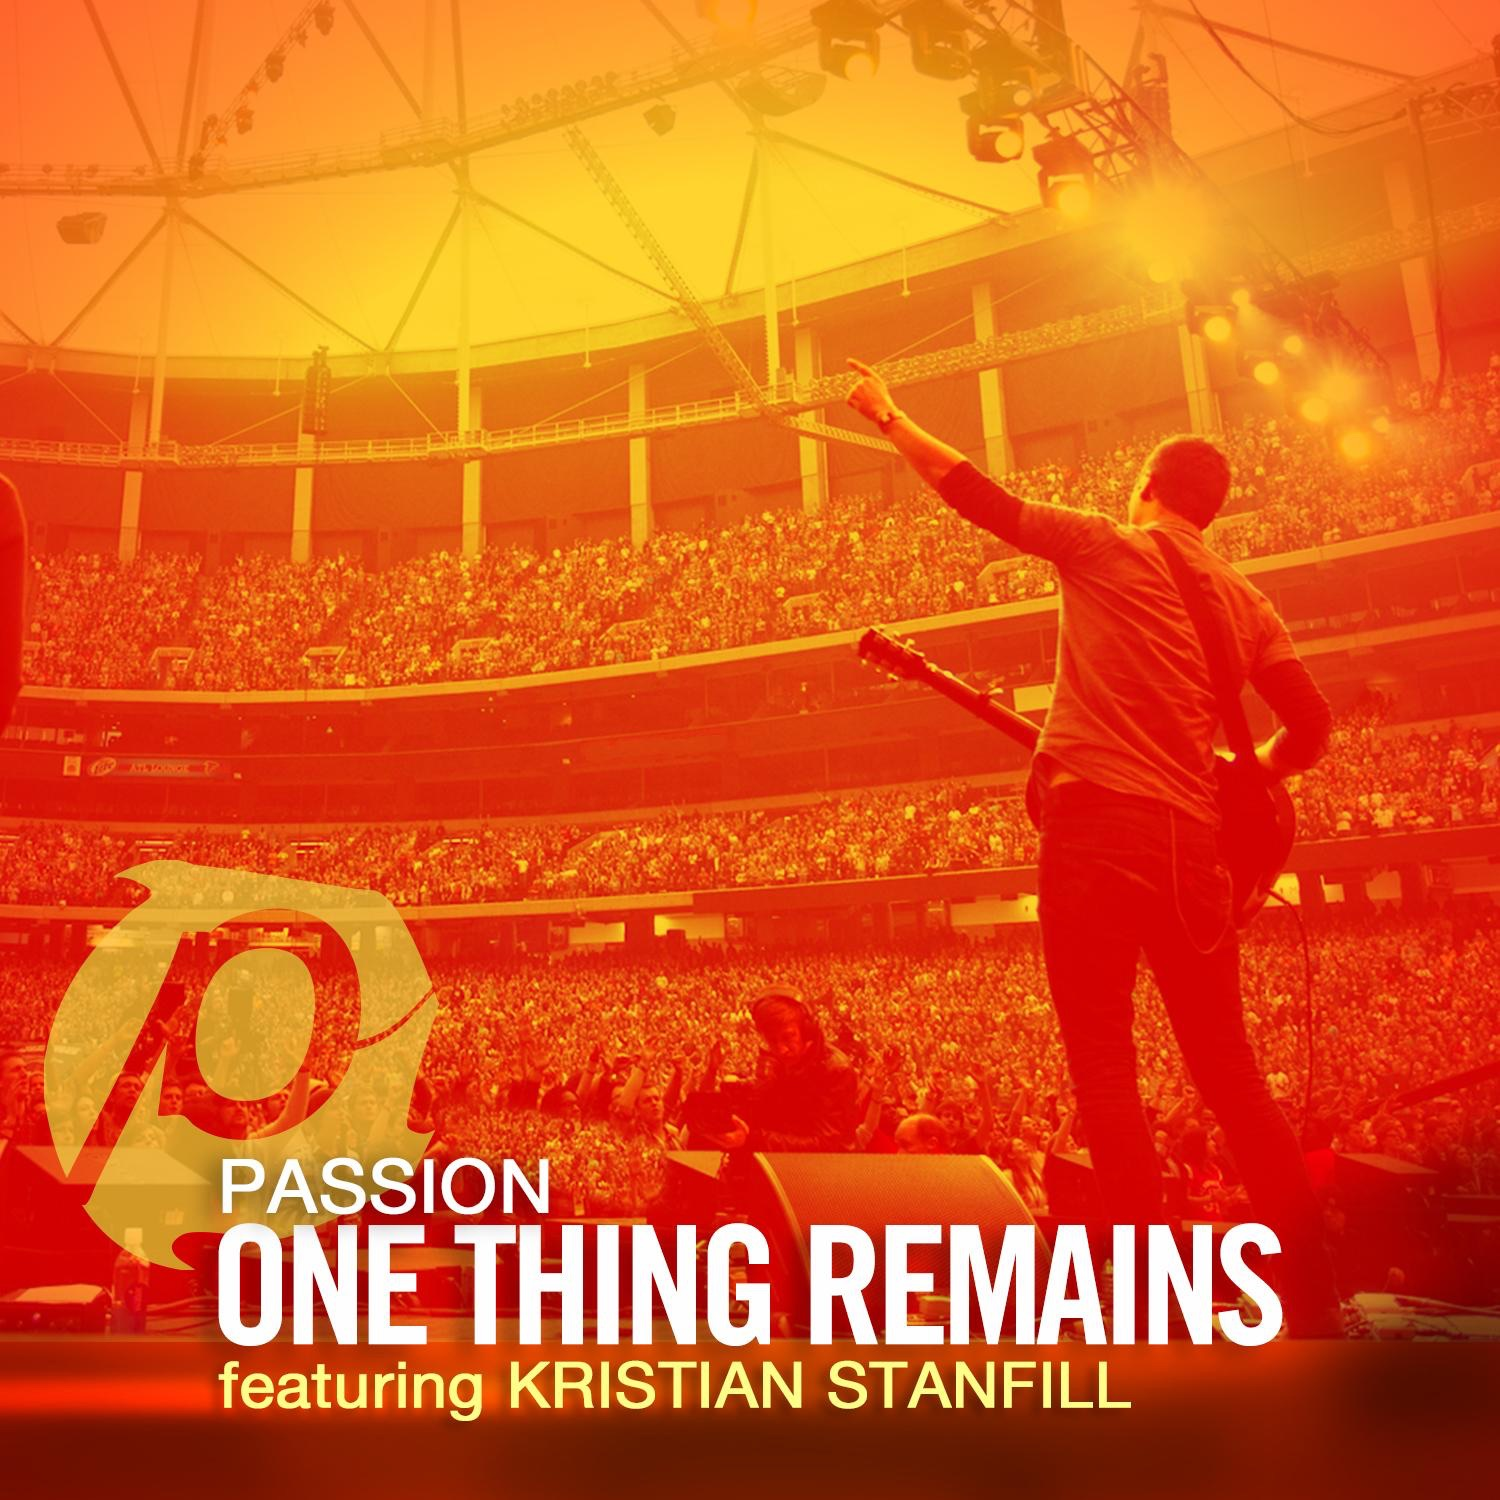 One Thing Remains (feat. Kristian Stanfill) [Radio Version] - Single